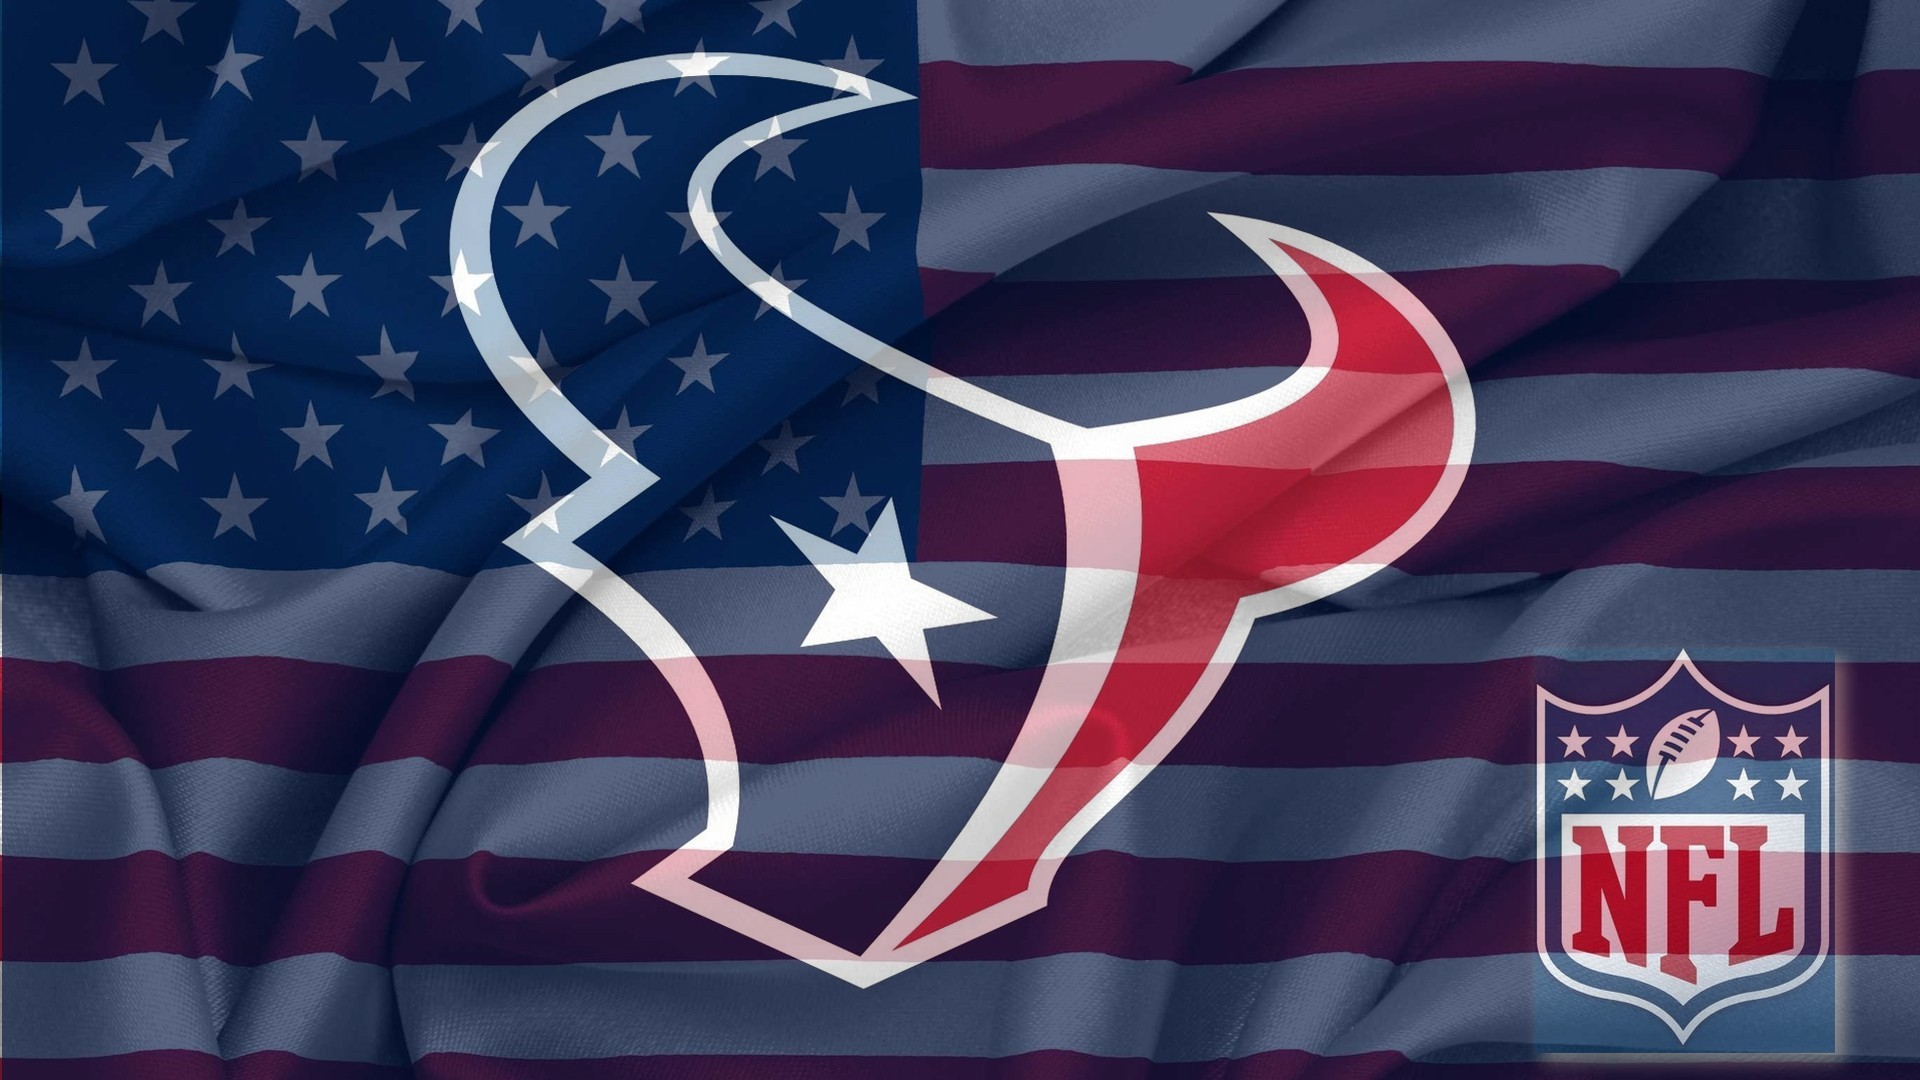 1920x1080 NFL Houston Texans Logo With NFL Logo On USA American Flag Background .